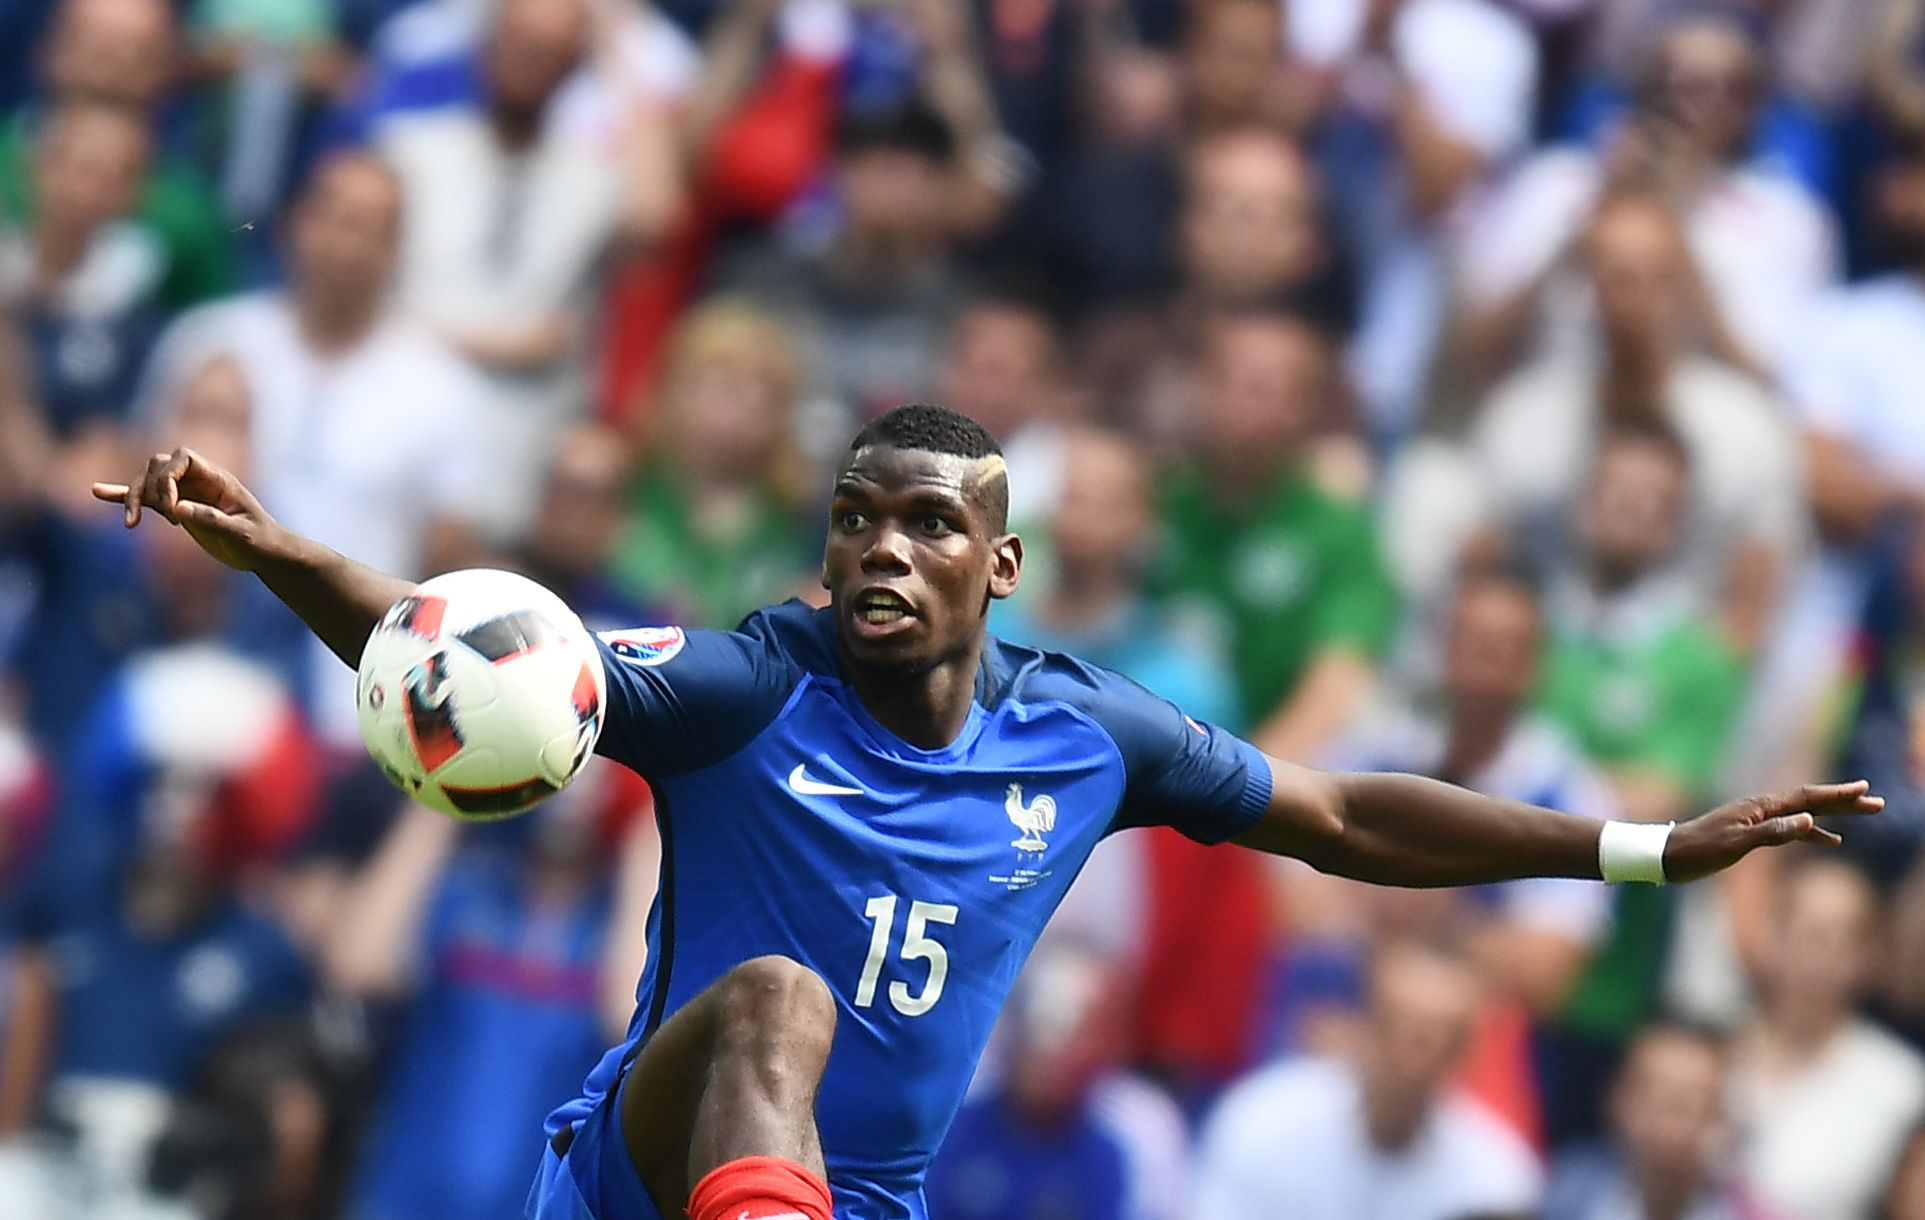 France star Paul Pogba is a Manchester United target.